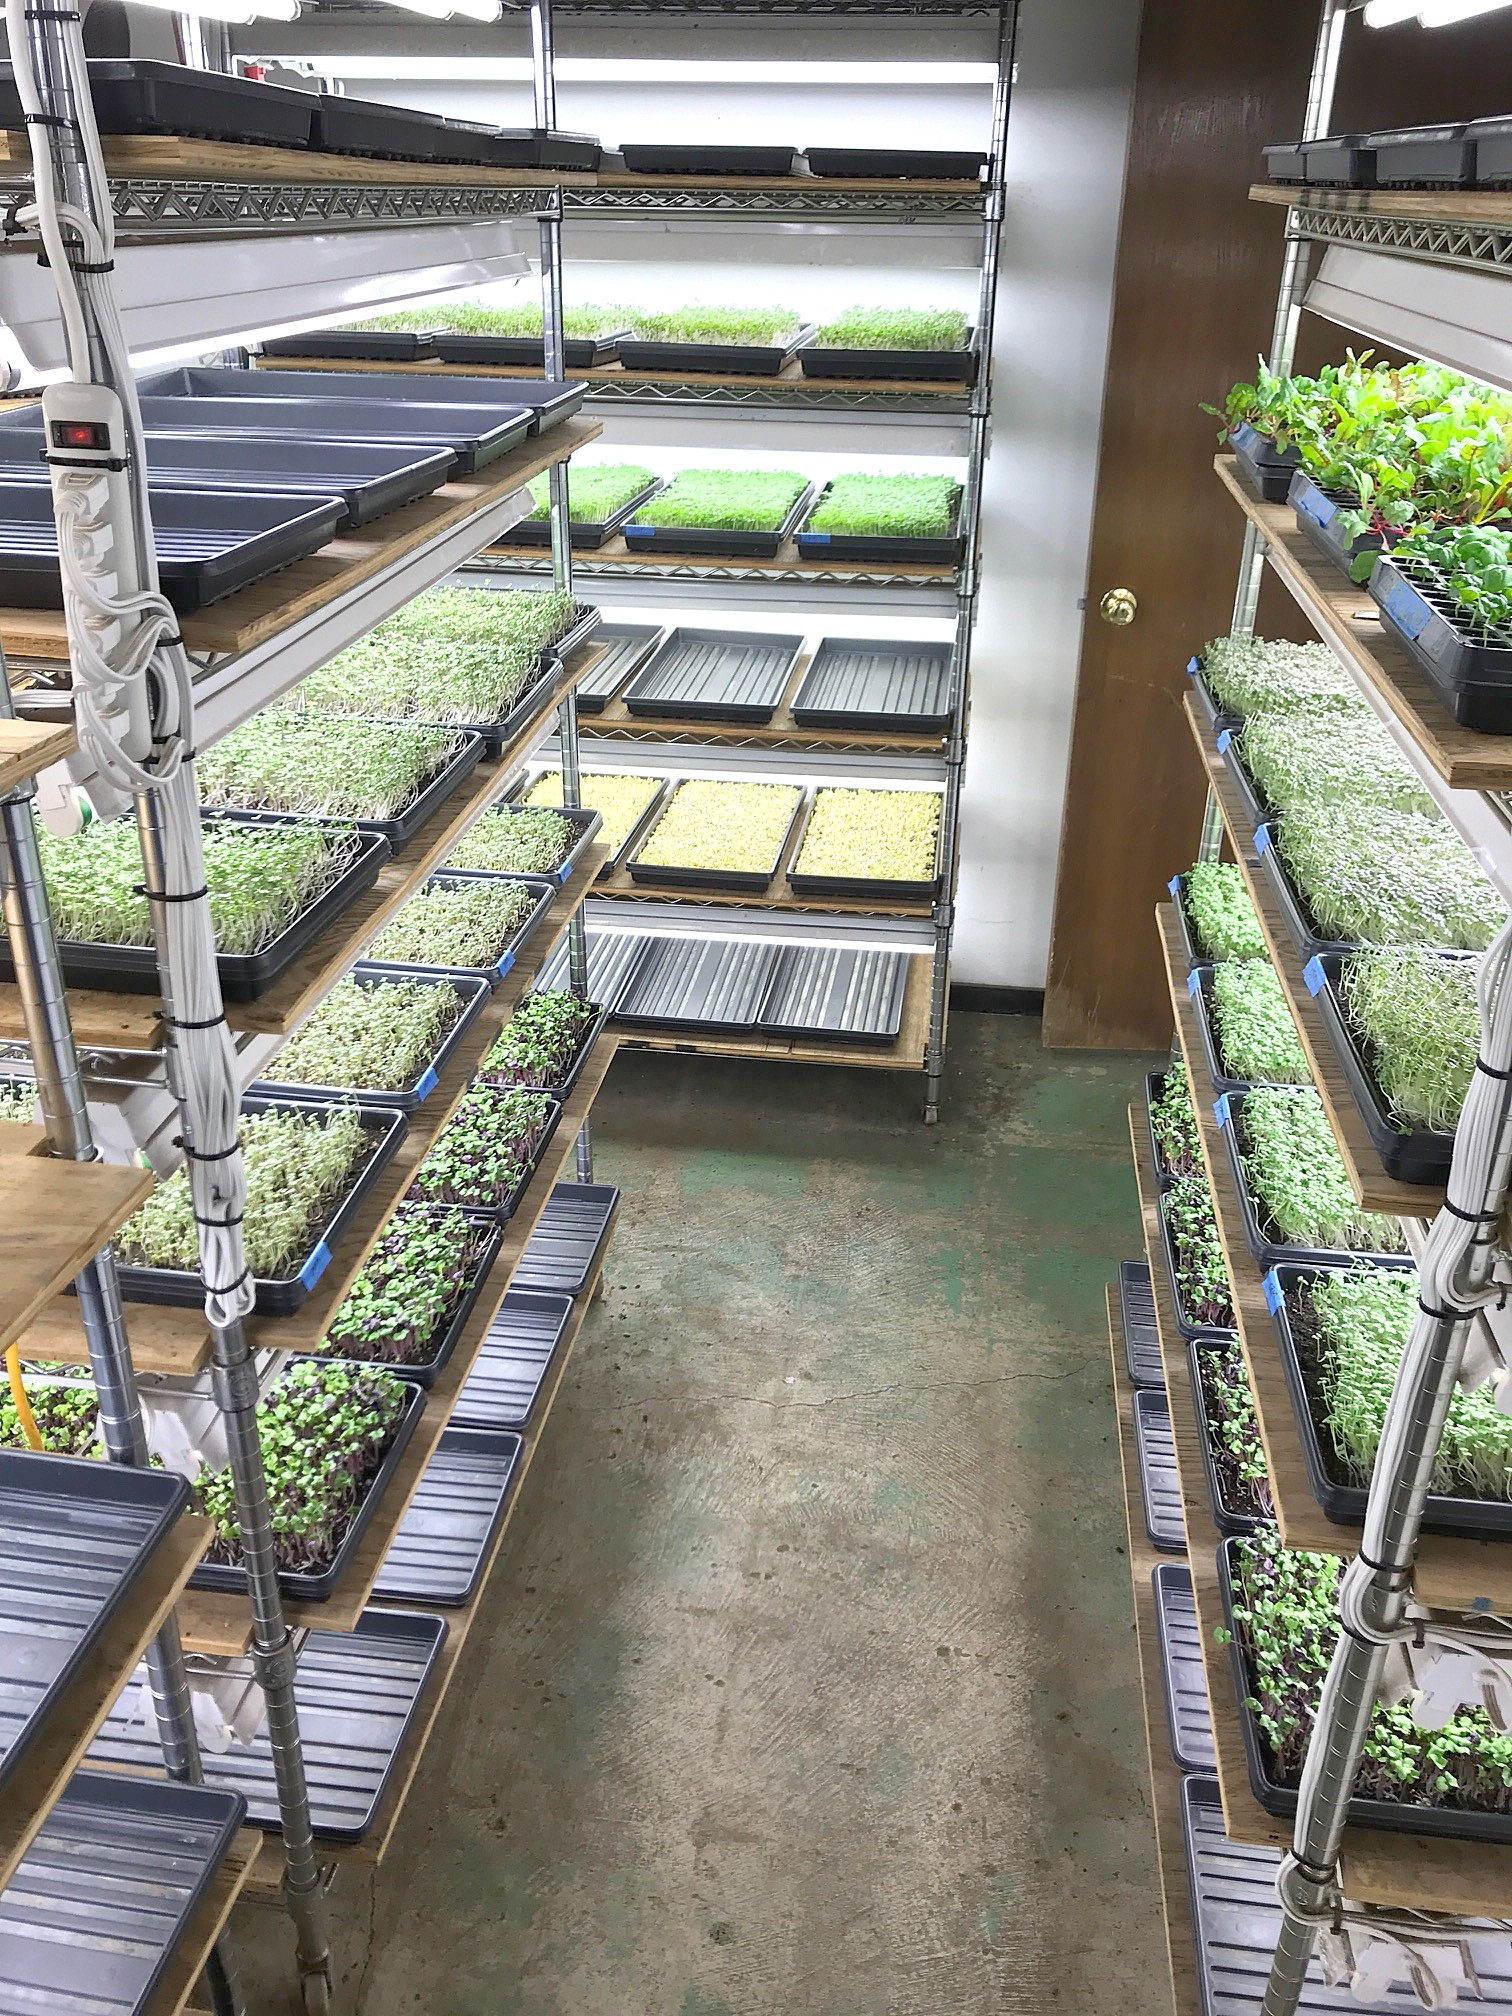 Walbridge native Drew Sample started Capital City Greens, a Columbus-based urban farm in the spring of 2016. His microgreens are available locally at Lee Williams House of Meats in Oregon and at Walt Churchill's Market. (Submitted photo)